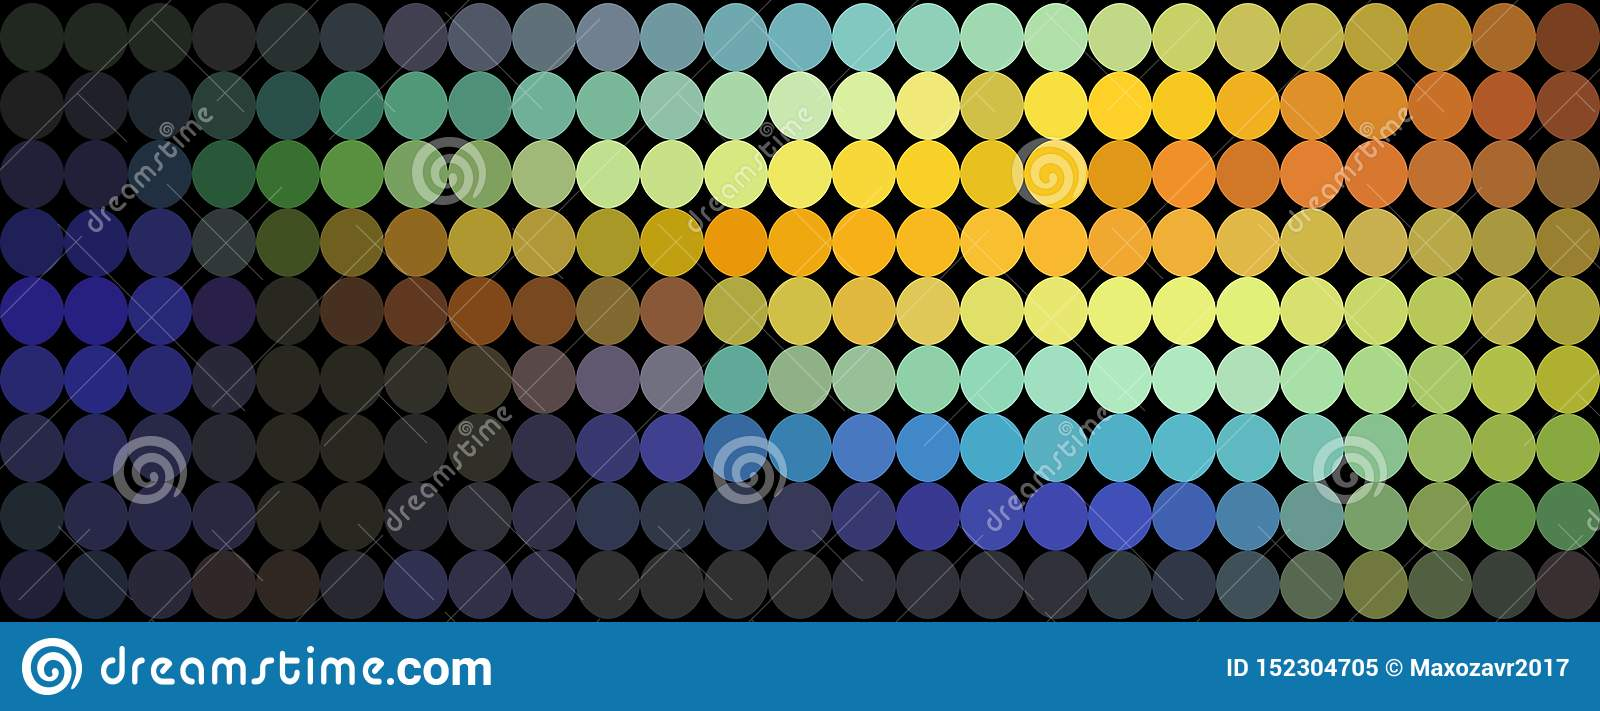 Orange blue yellow gradient dots abstract pattern. Mosaic holographic background.